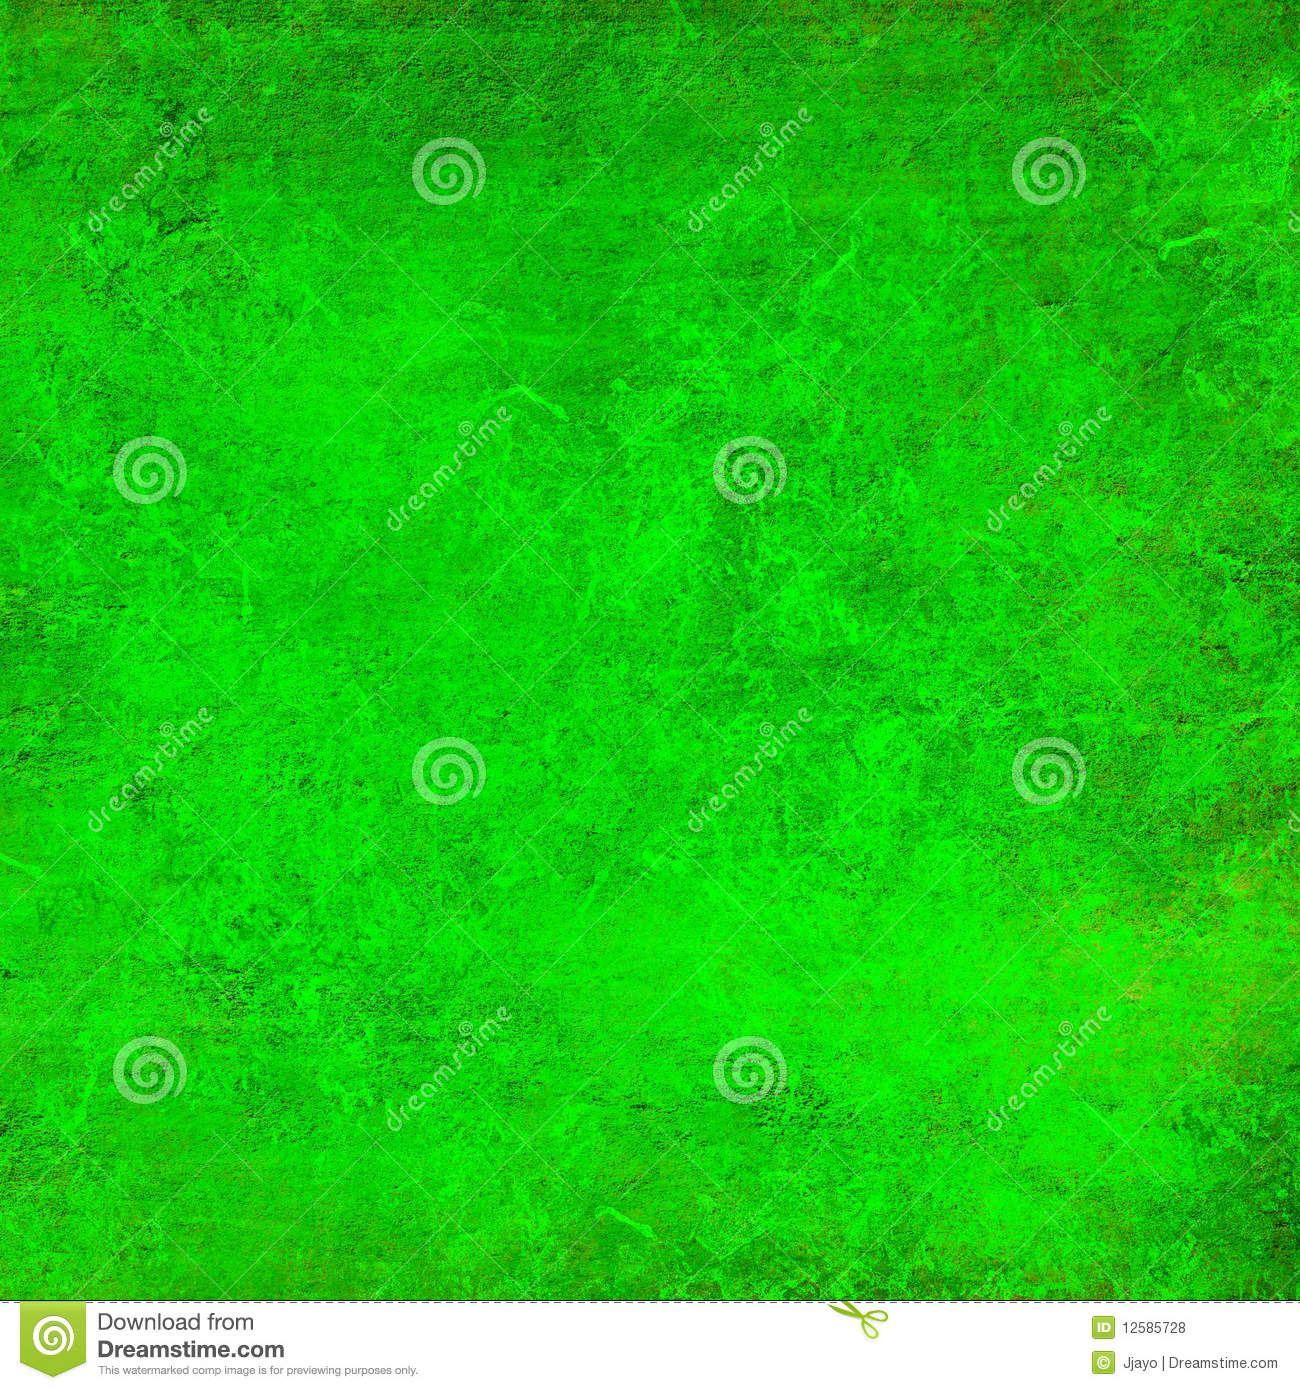 green grunge vector background royalty free stock images image 9980349 green grunge textured abstract background royalty free stock photos image 12585728